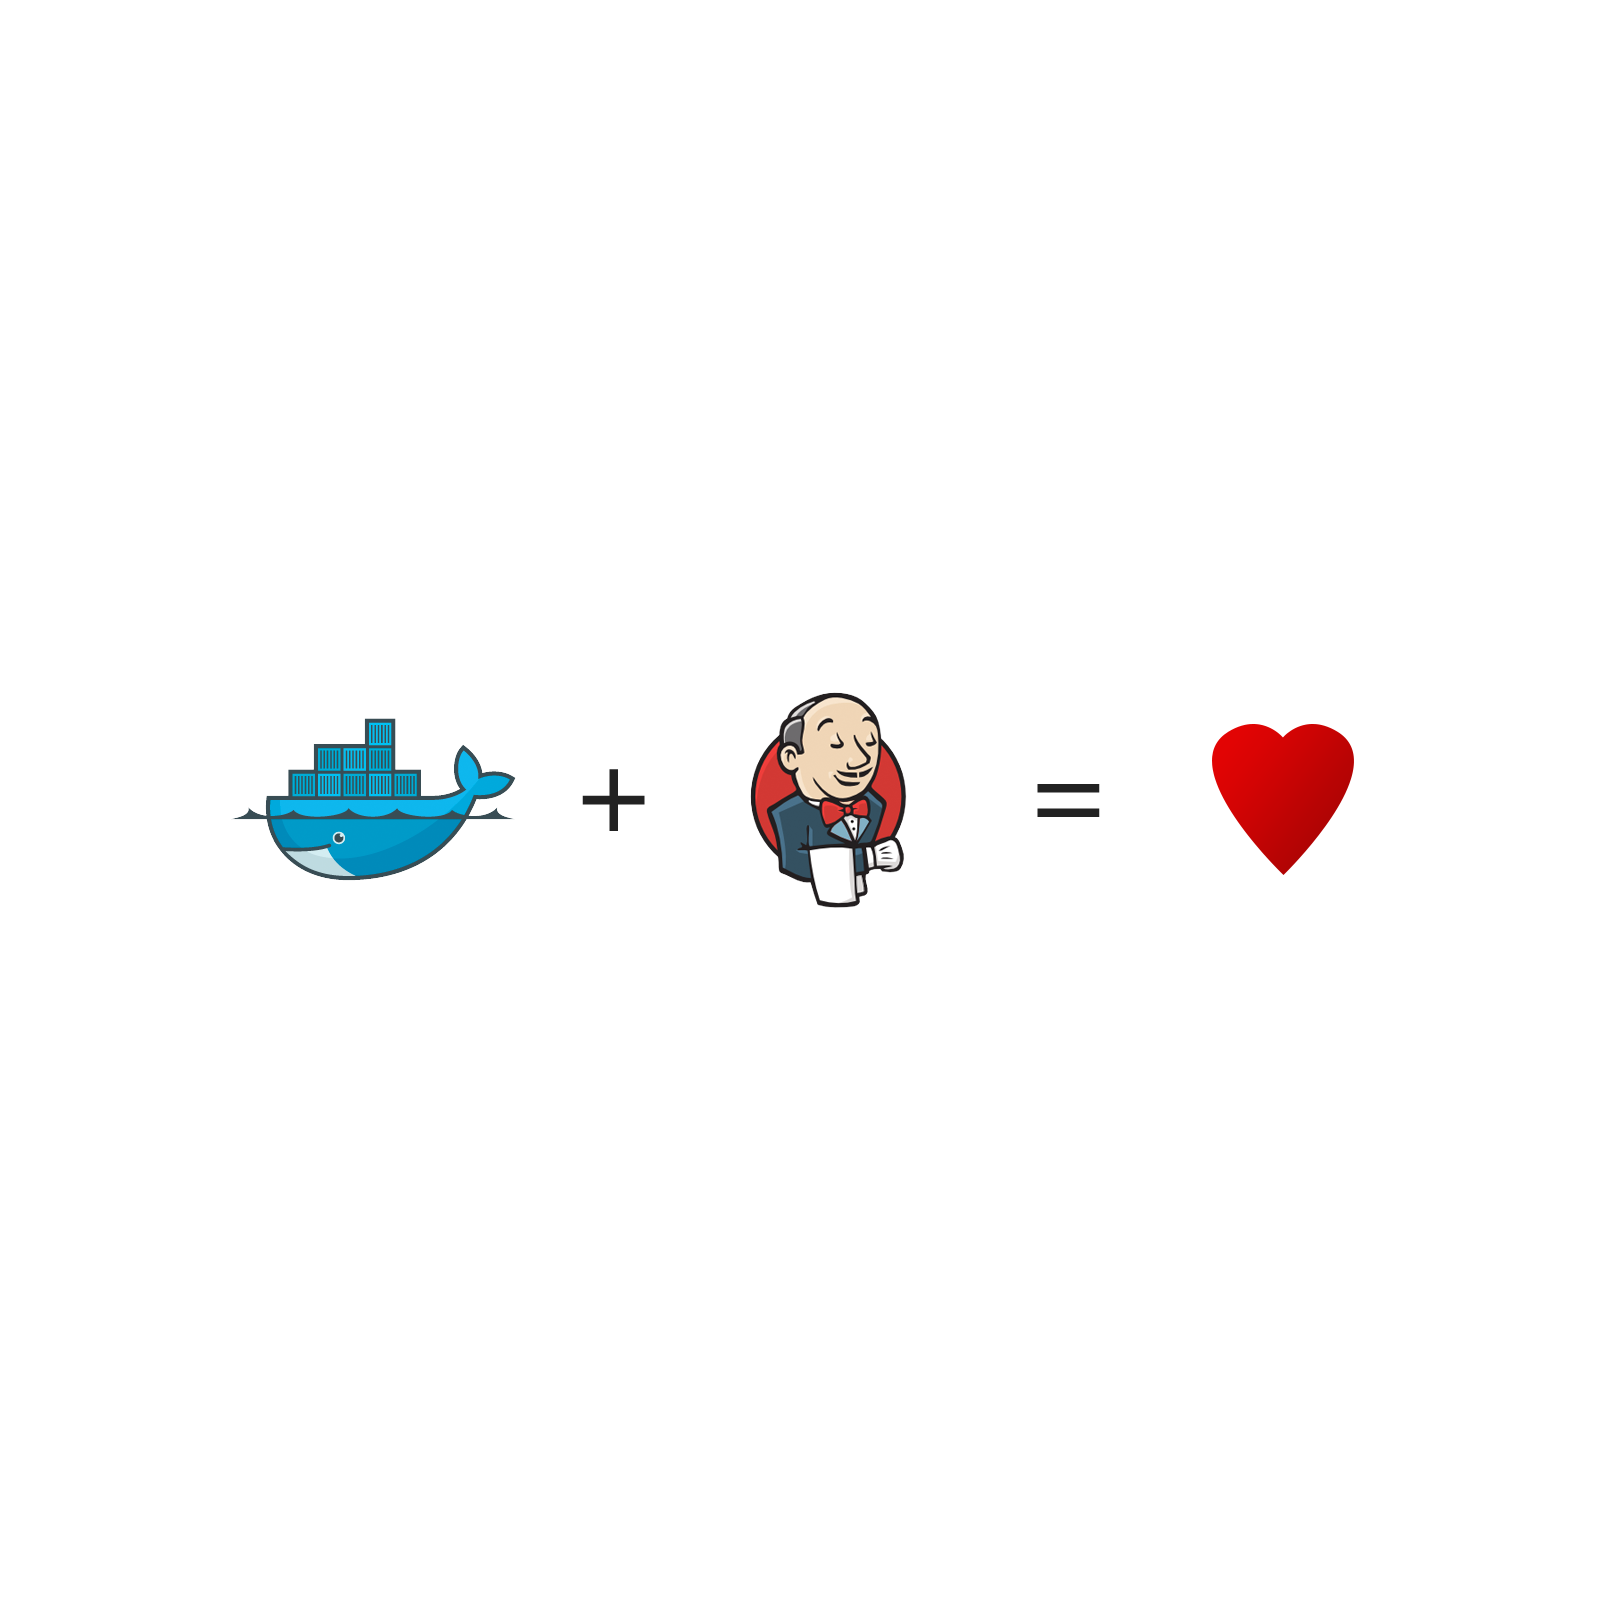 Building your first Docker image with Jenkins 2: Guide for